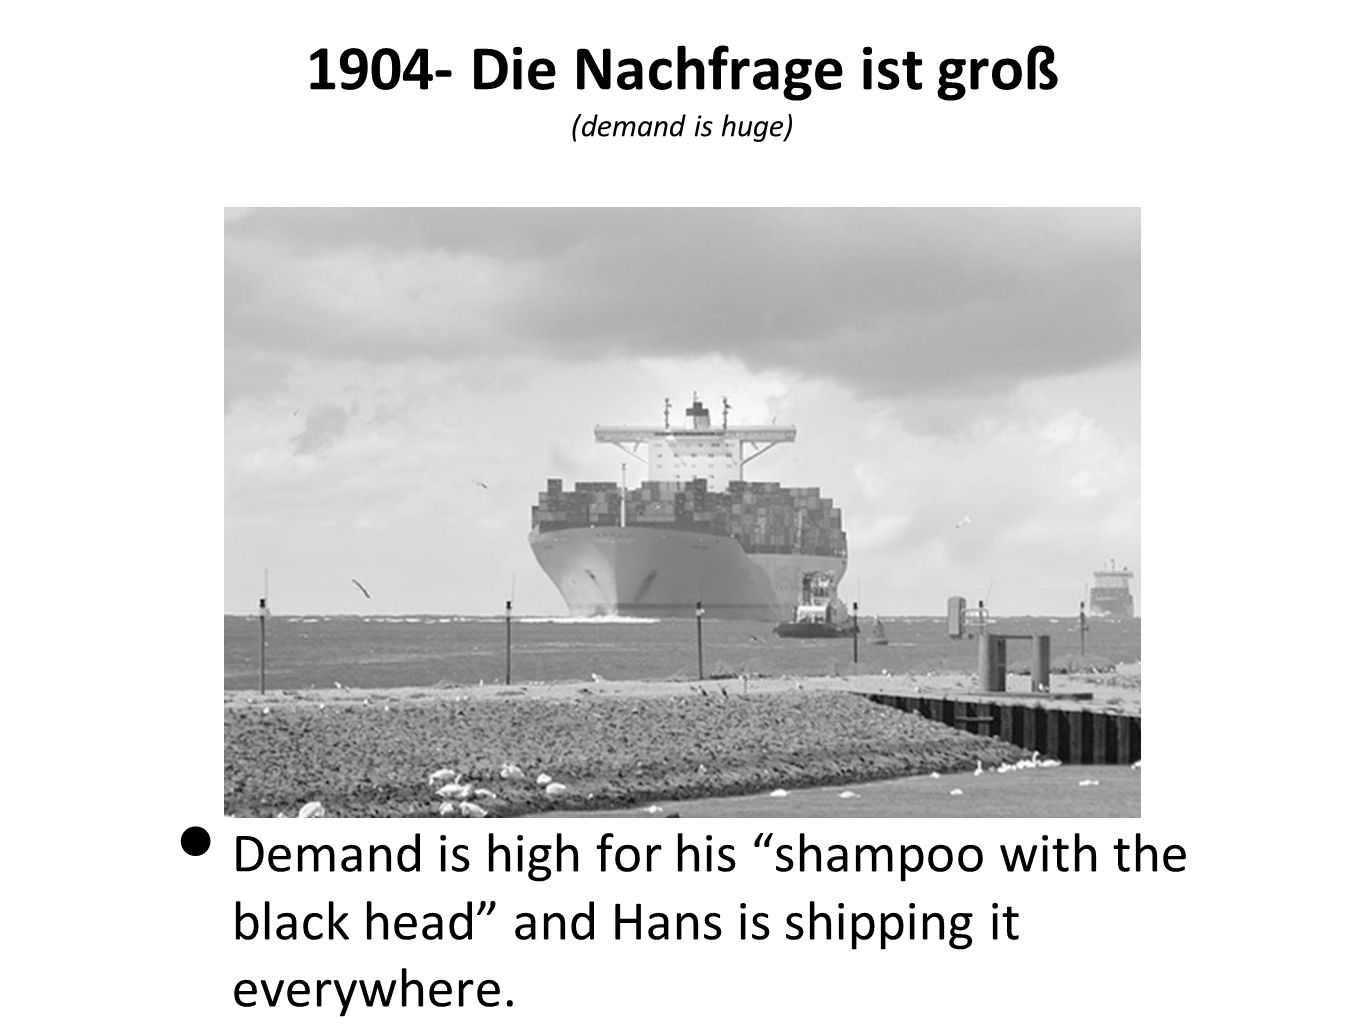 1904- Die Nachfrage ist groß (demand is huge) Demand is high for his shampoo with the black head and Hans is shipping it everywhere.